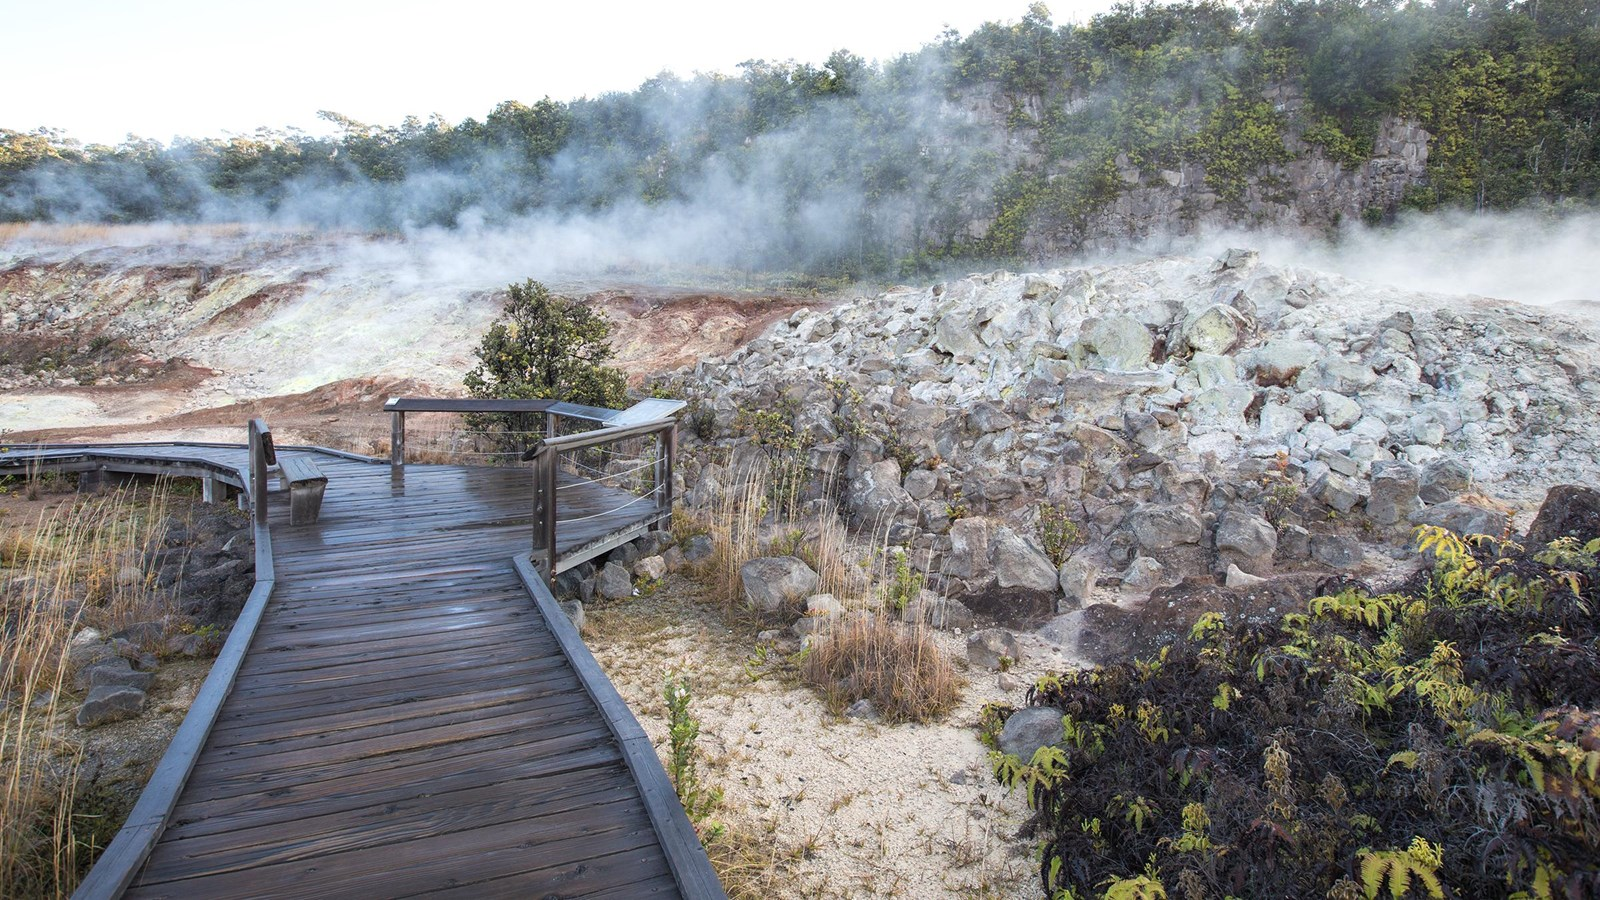 Steam rises from mineral deposits in front of a boardwalk